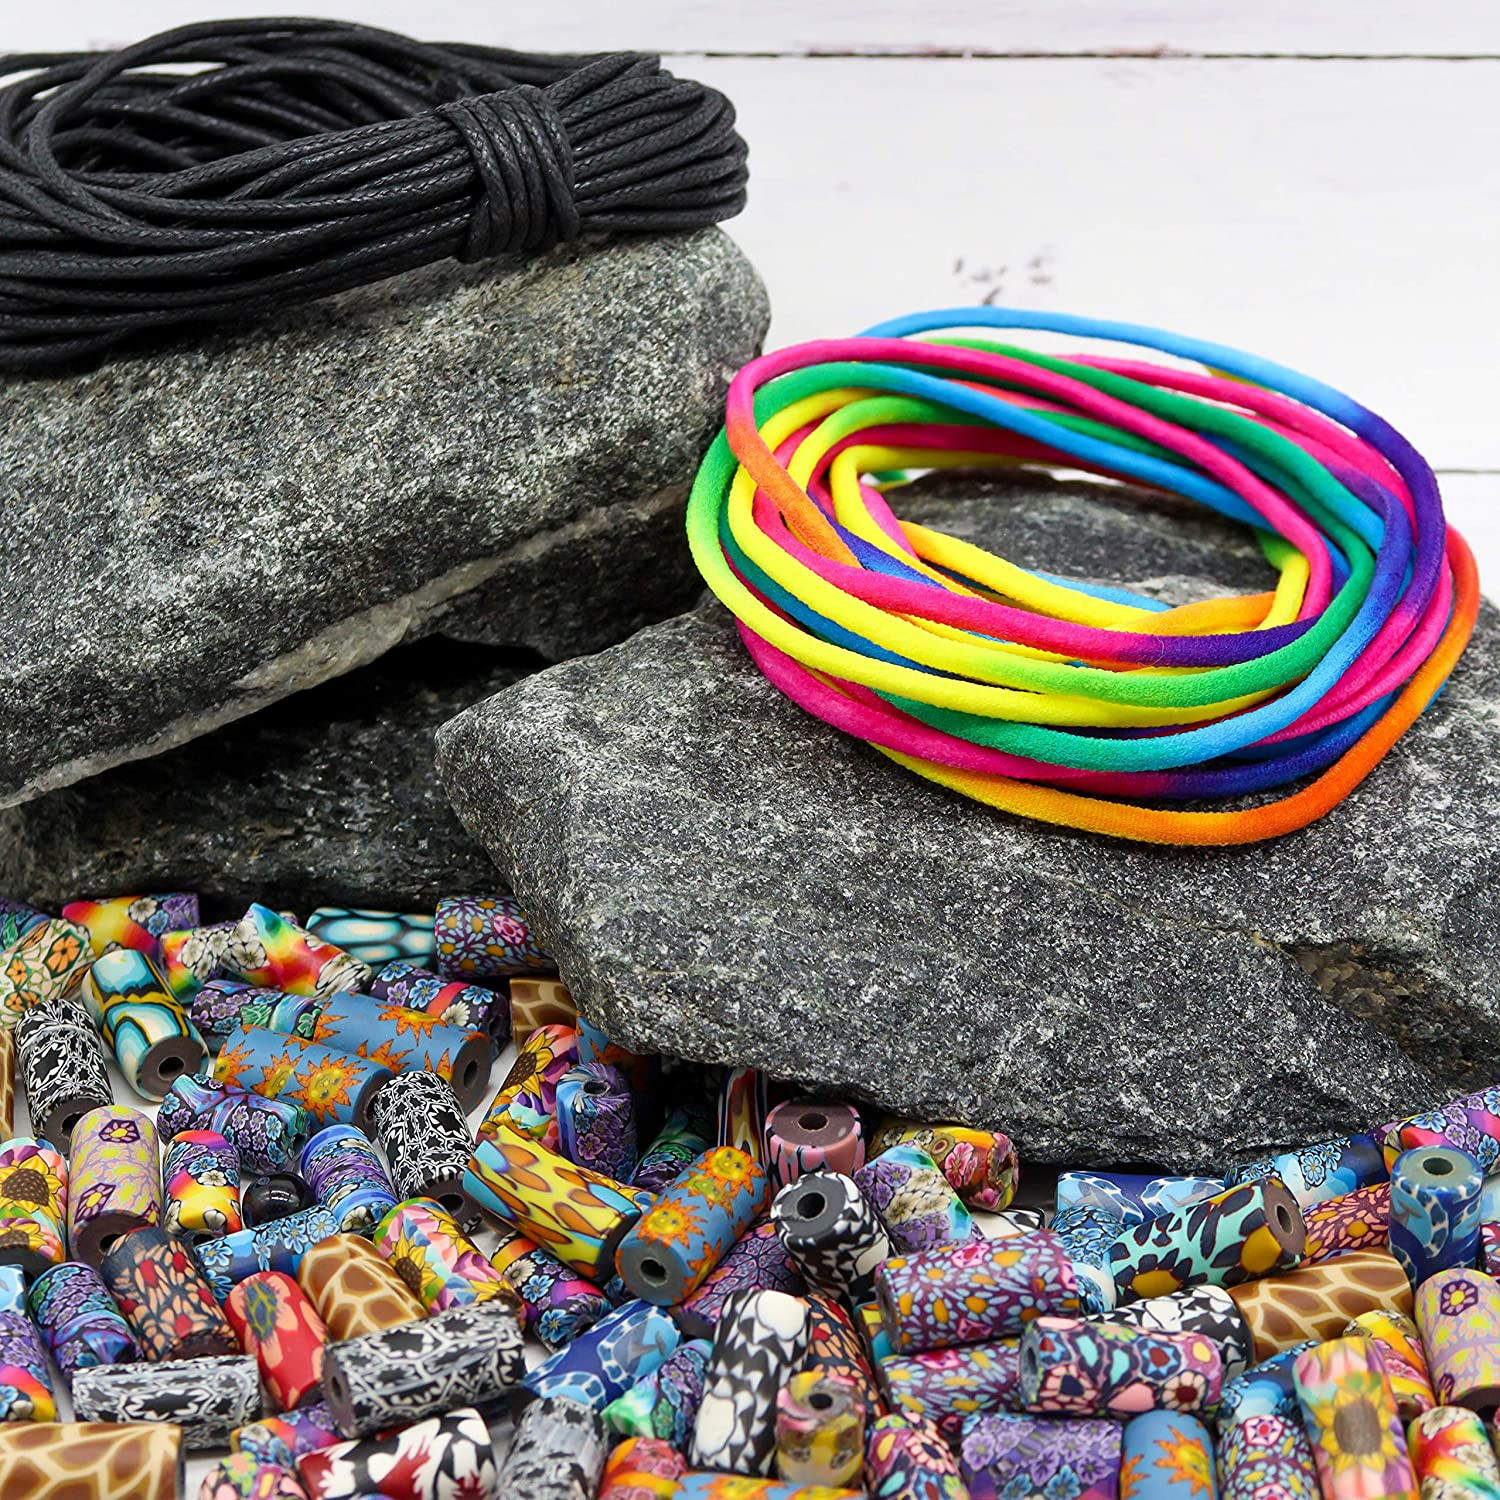 Clay Tube Crafts Beads Kit with 6m Tie-Dye Cord 10m Black Wax Cord and 3 Threaders 100 pcs Polymer Clay Beads for Jewelry Making Kit for Adults Quality DIY Jewelry Making Supplies Craft Kit